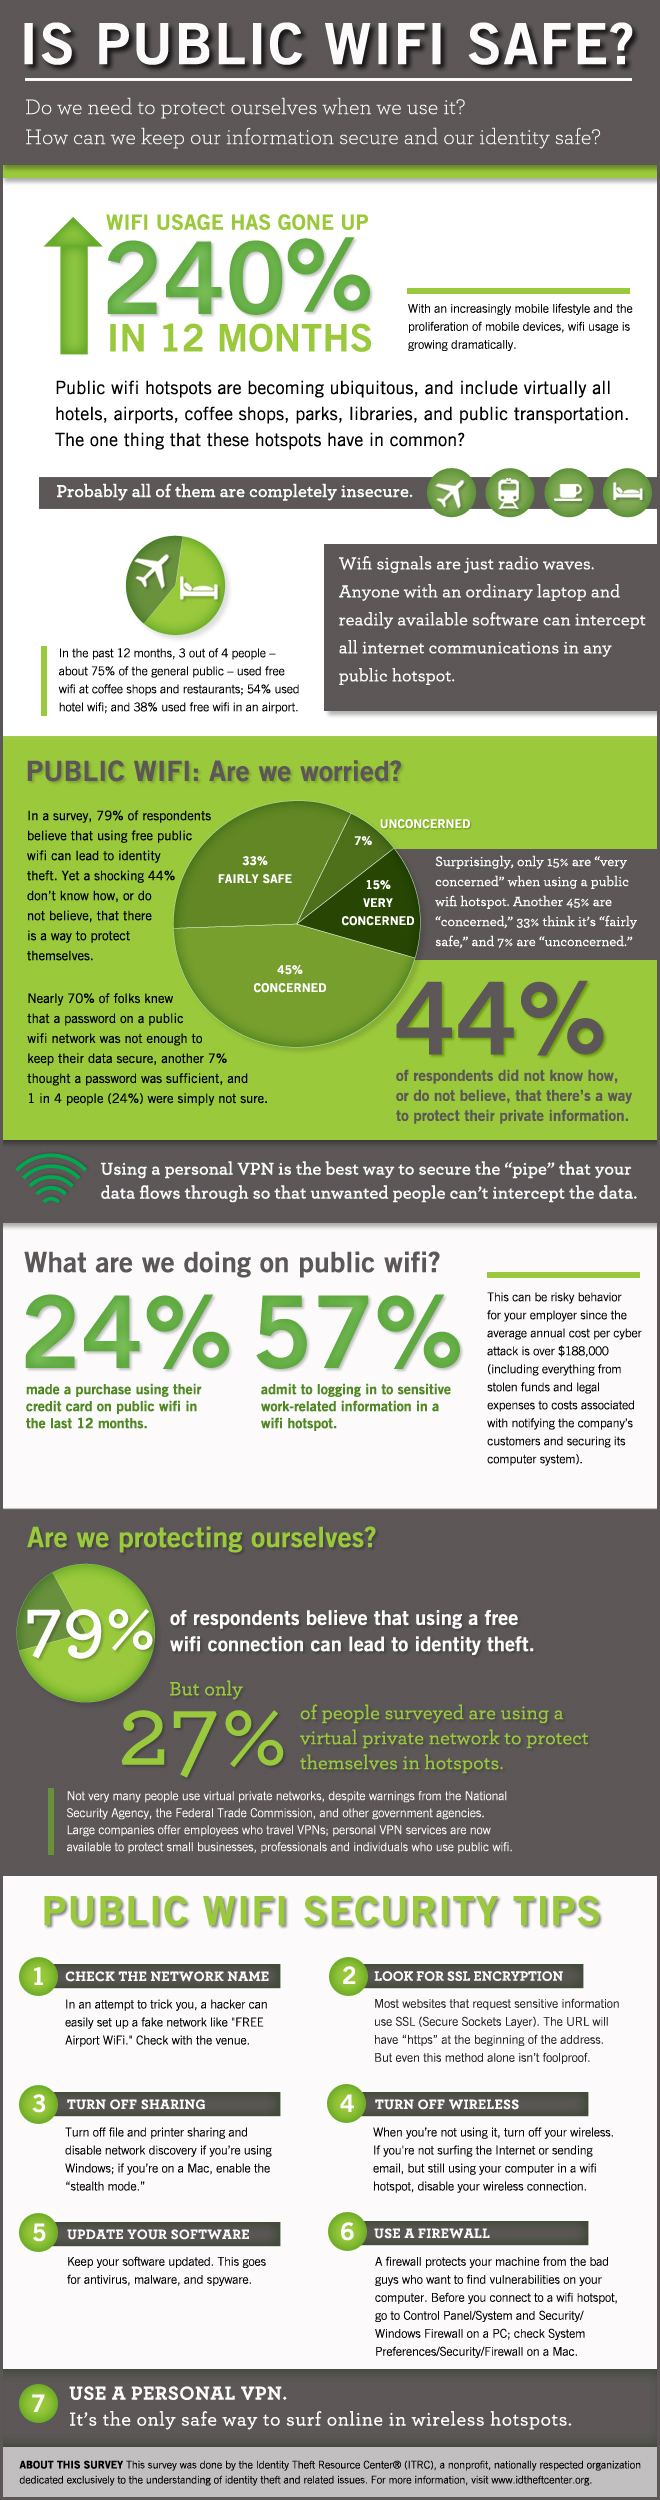 Is Public WiFi Safe?